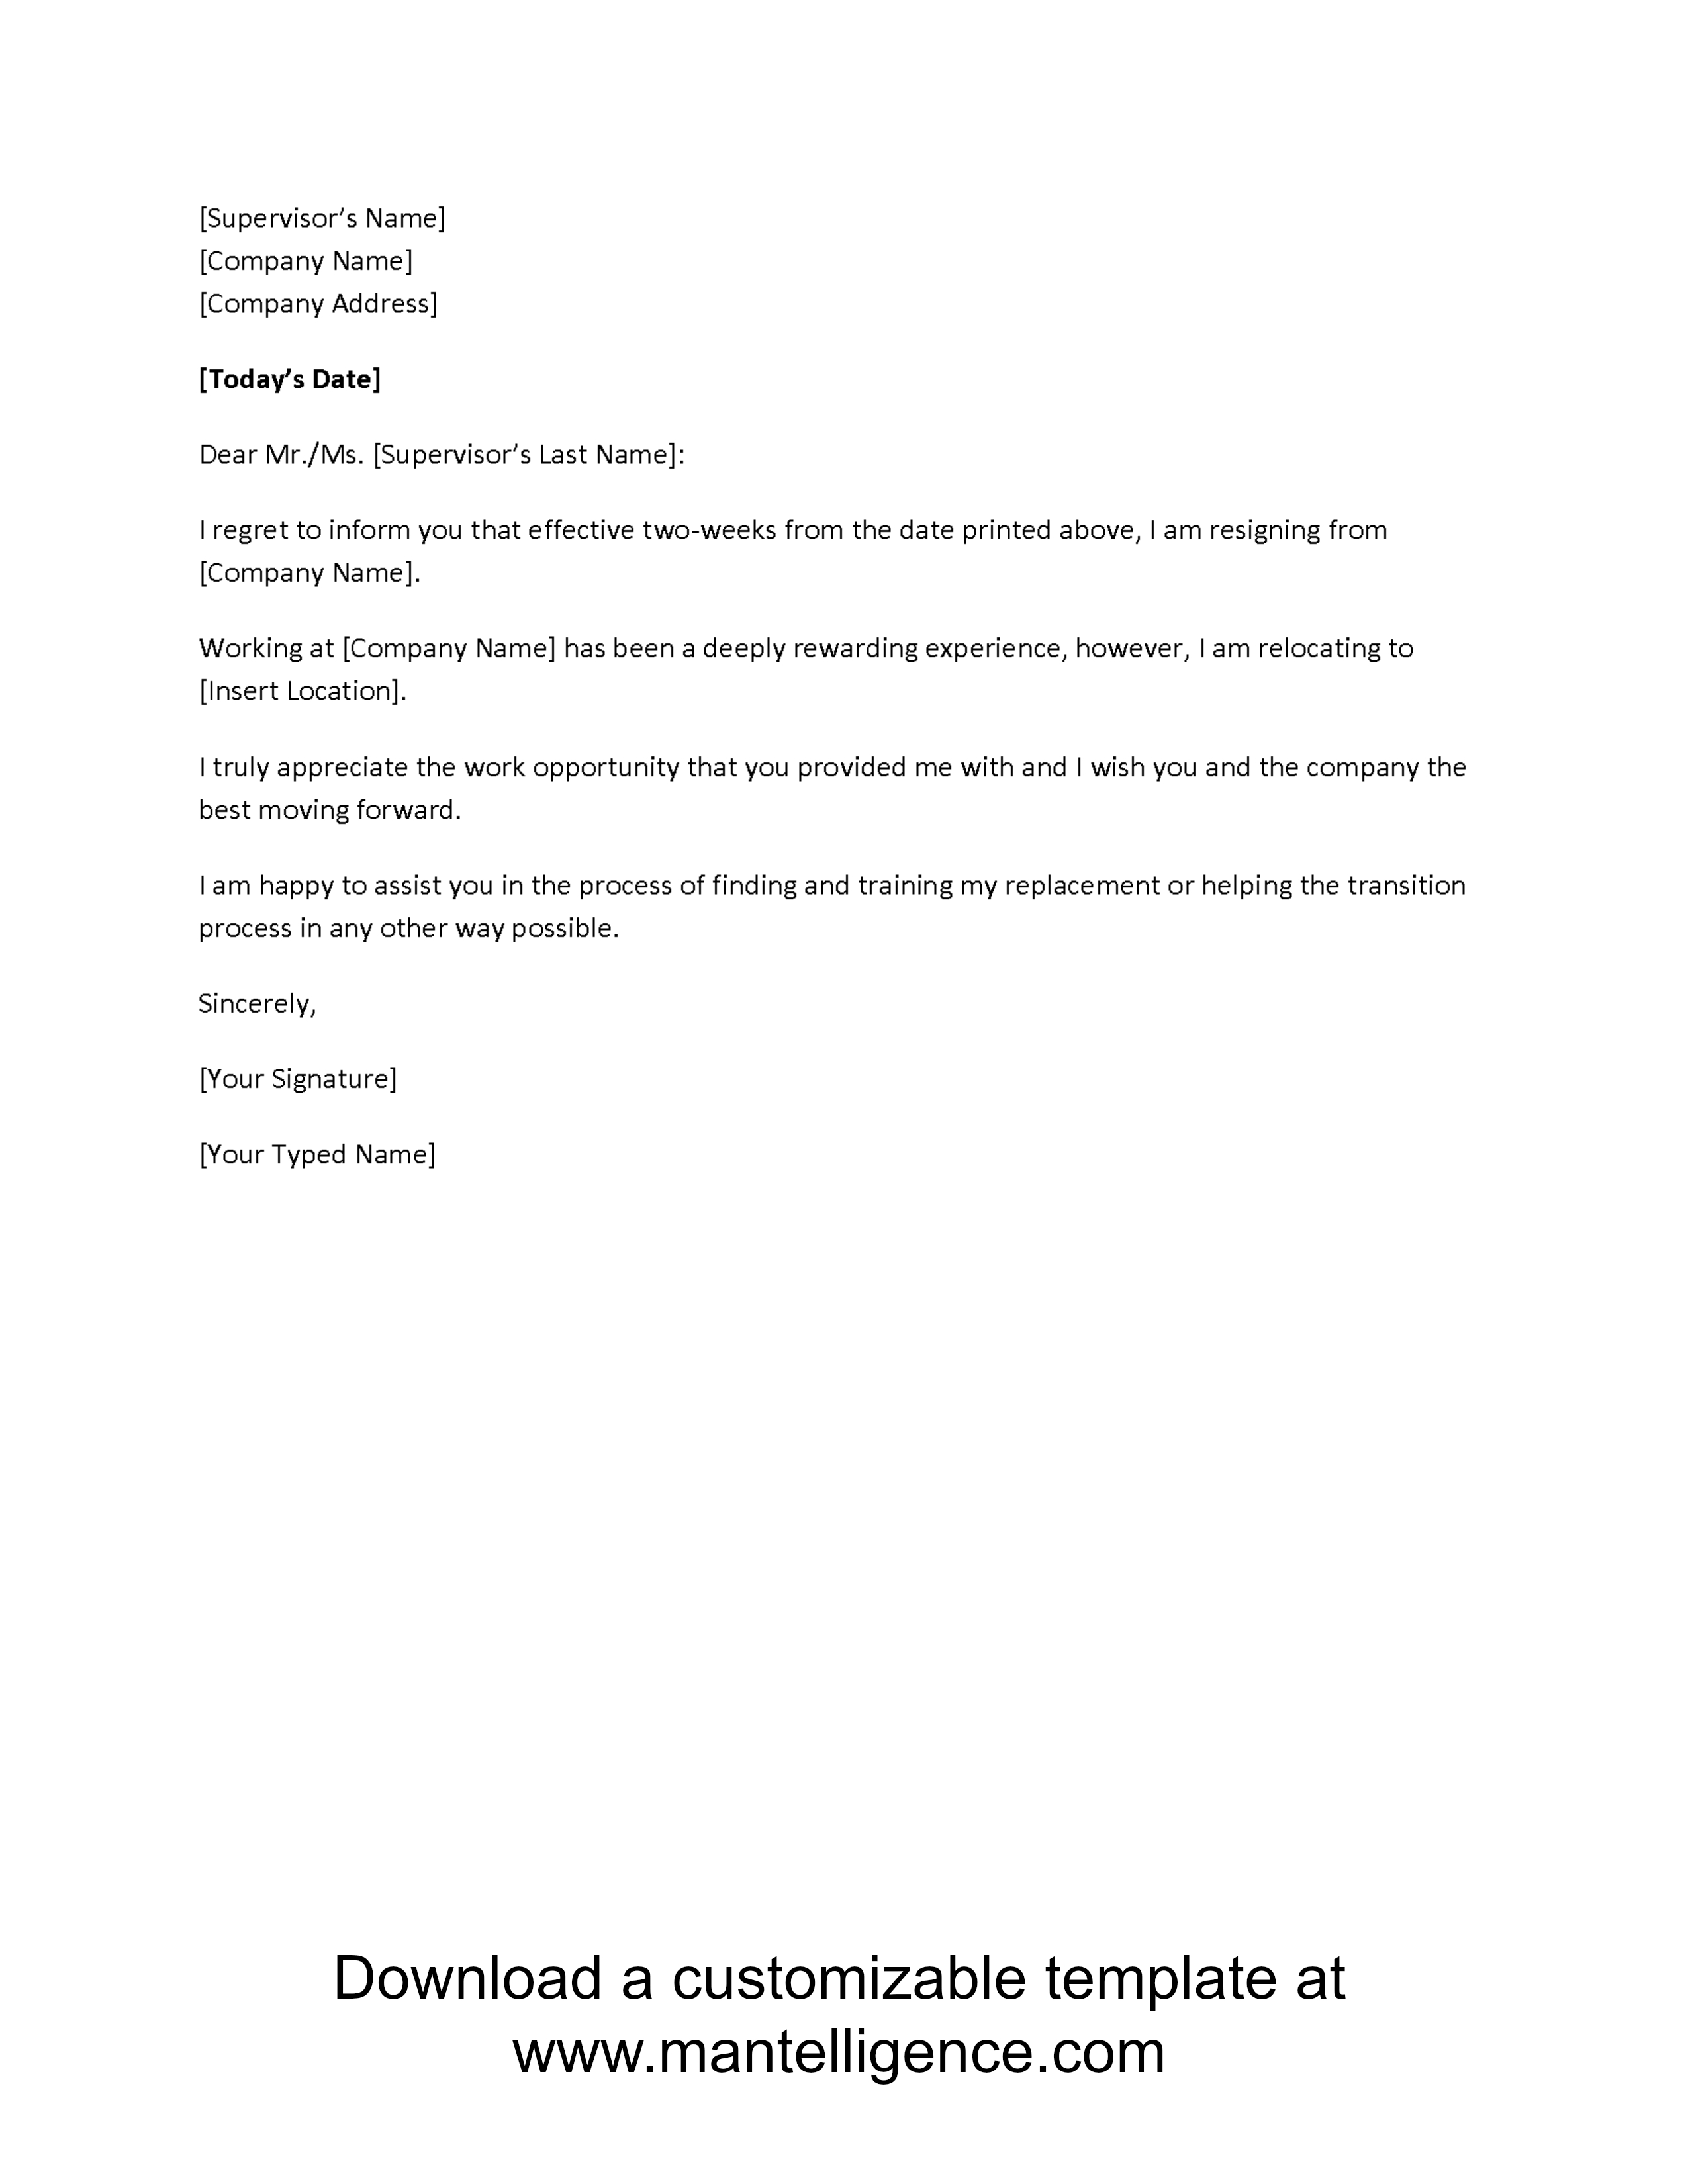 Verbal Warning Letter Template - 3 Highly Professional Two Weeks Notice Letter Templates